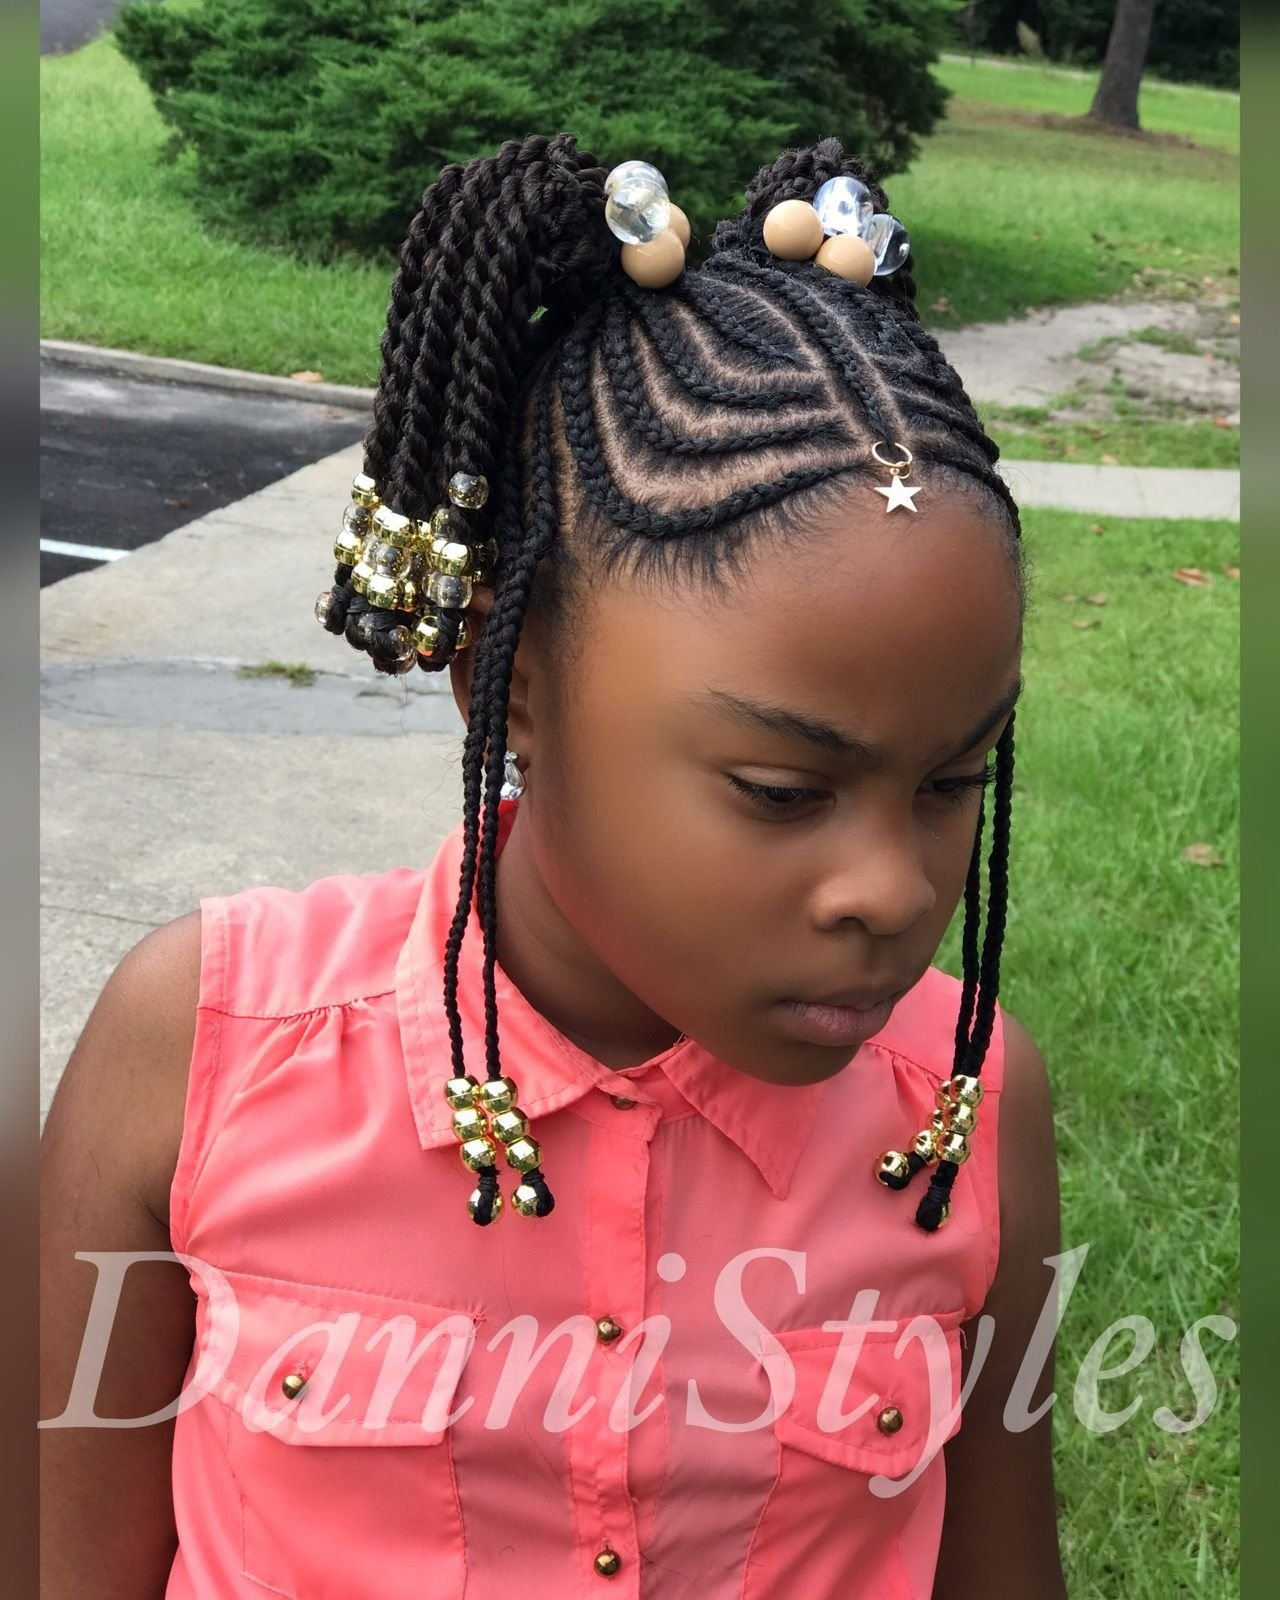 The Best Tribal Braids For Kids Dannistyles Dannistyles Hair Pictures